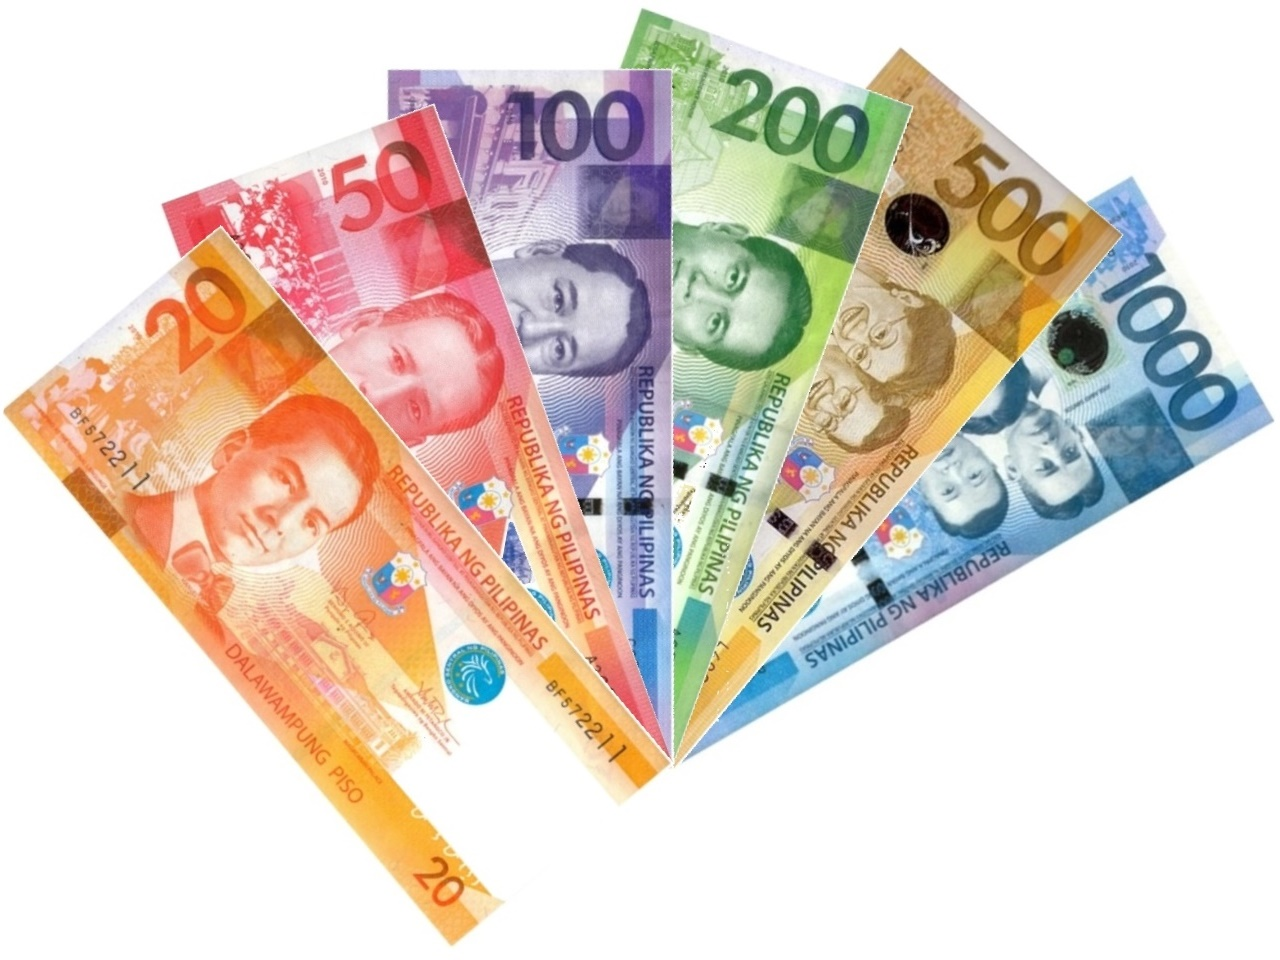 CurrencyBanknotes